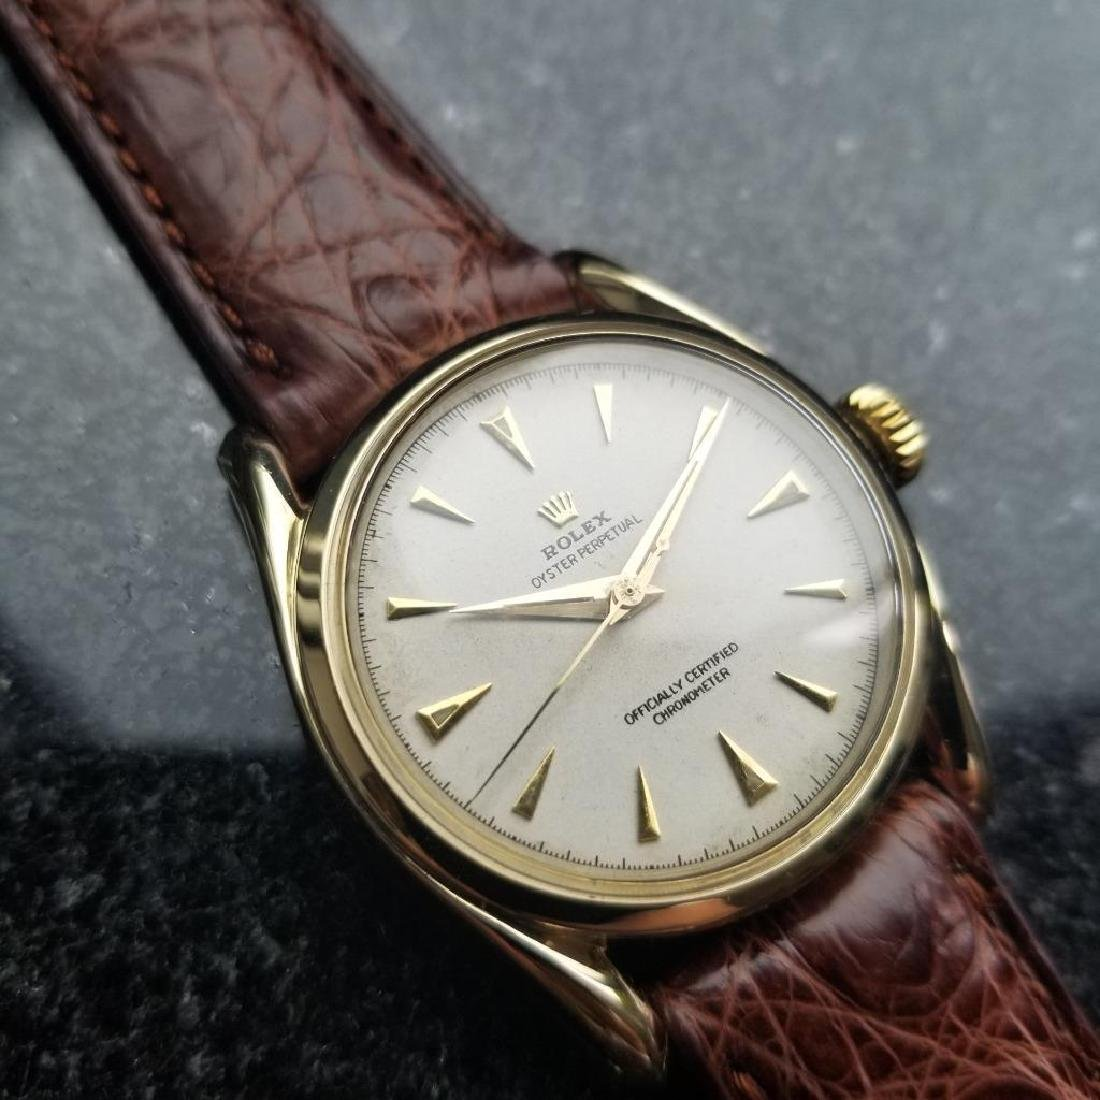 Rolex Oyster Perpetual Vintage 1951 14k Gold 6092 - 4